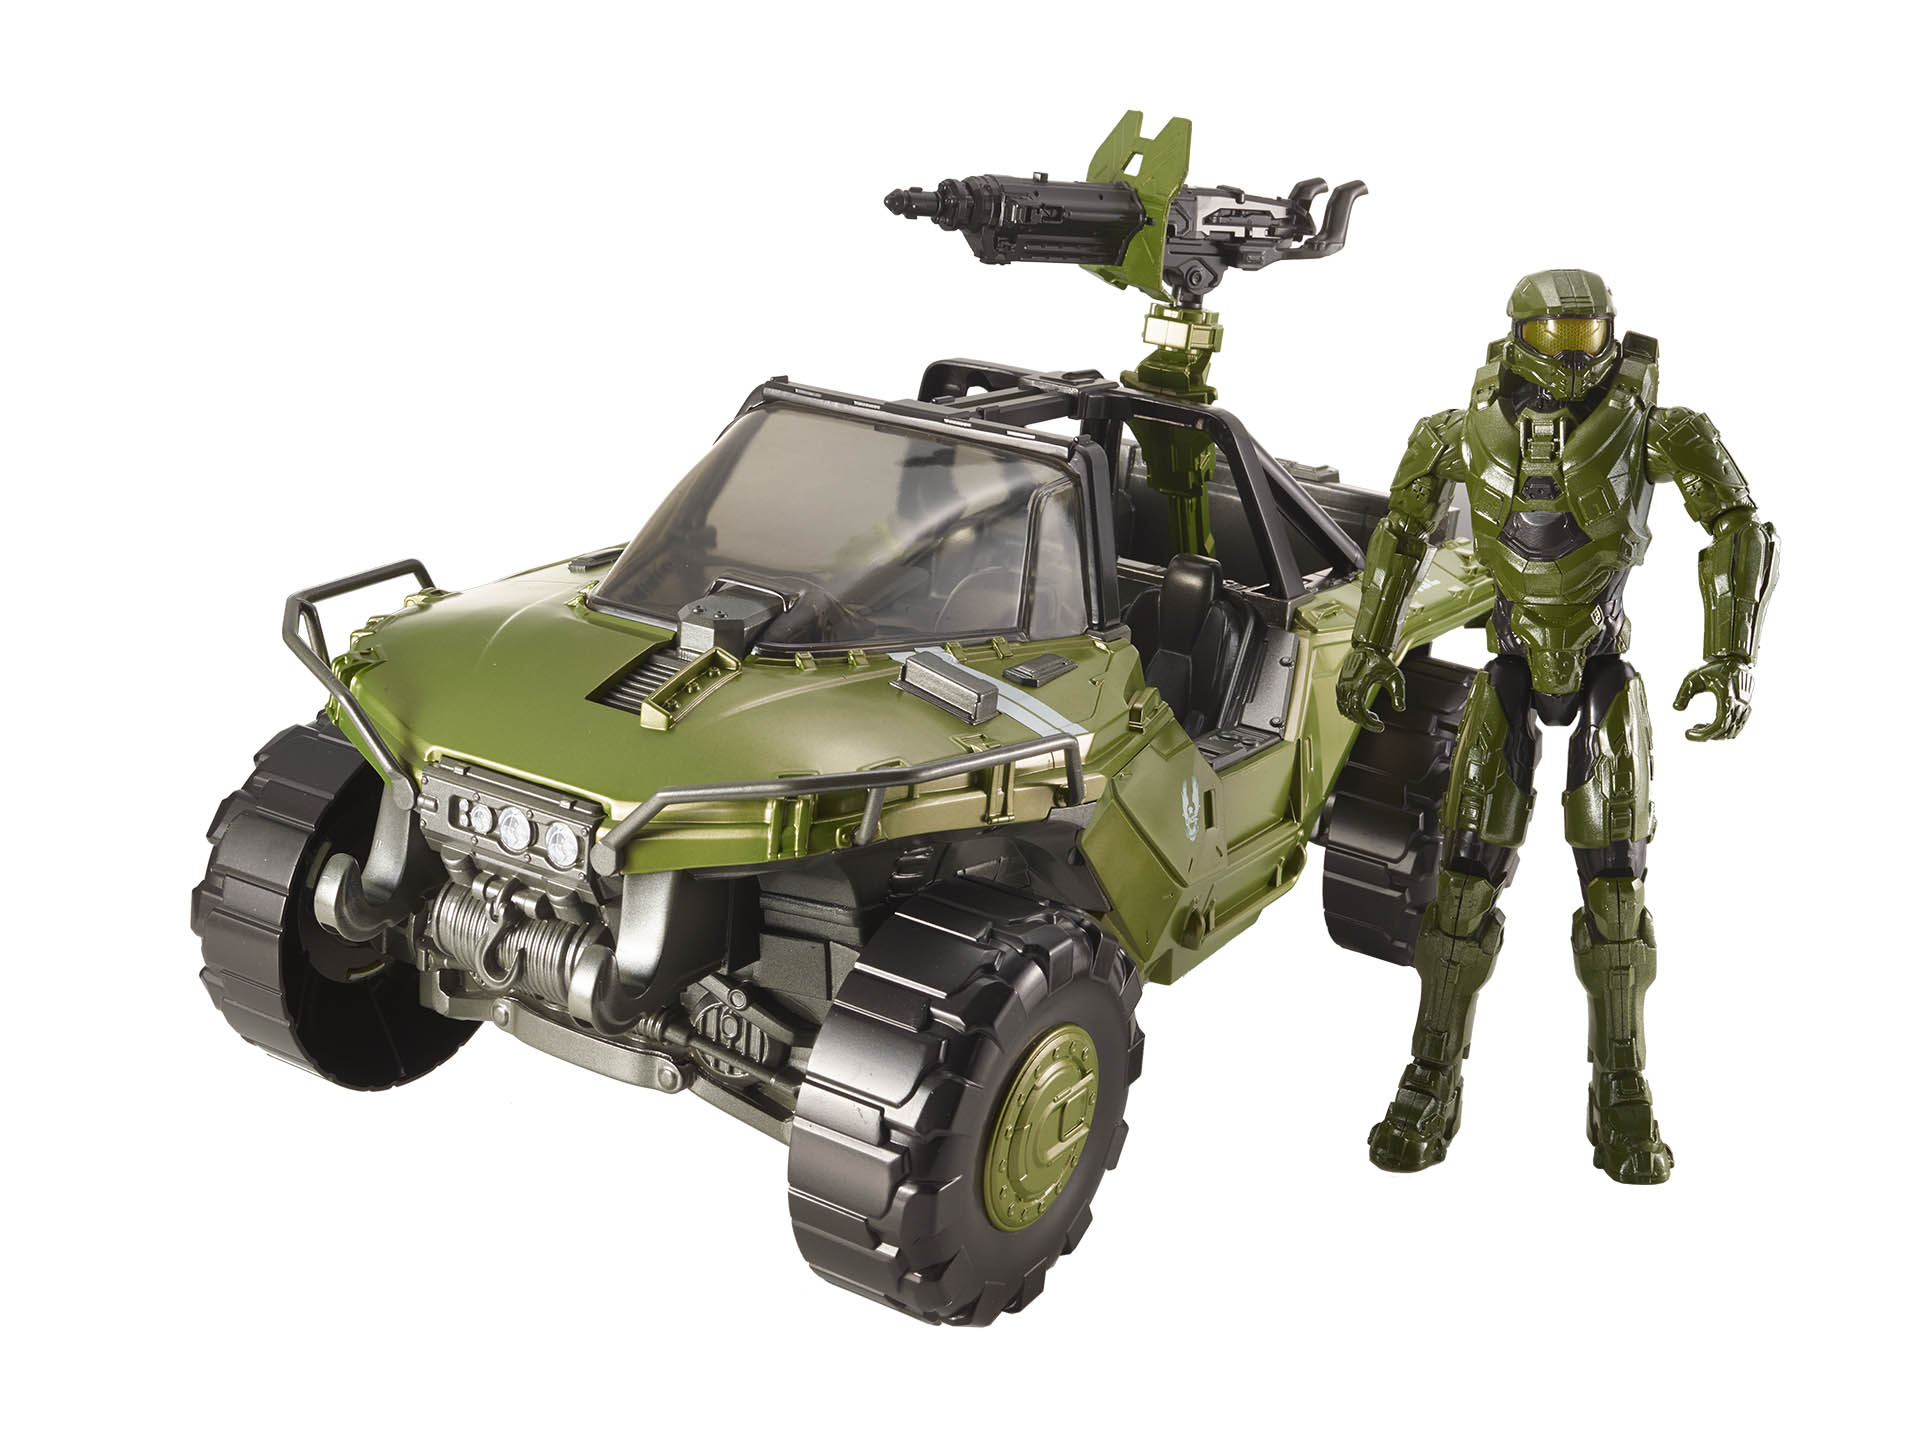 tyco rc toys with Mattel Signs Deal Produce Halo Toys 191996 on Watch furthermore Nikko Black Fox 1985 together with Tyco Chld Rc Hw Stealth Tank A furthermore Classic Toys Lists That Ignore Rc Toys in addition Vintage Hot Rod Decals Set 1.